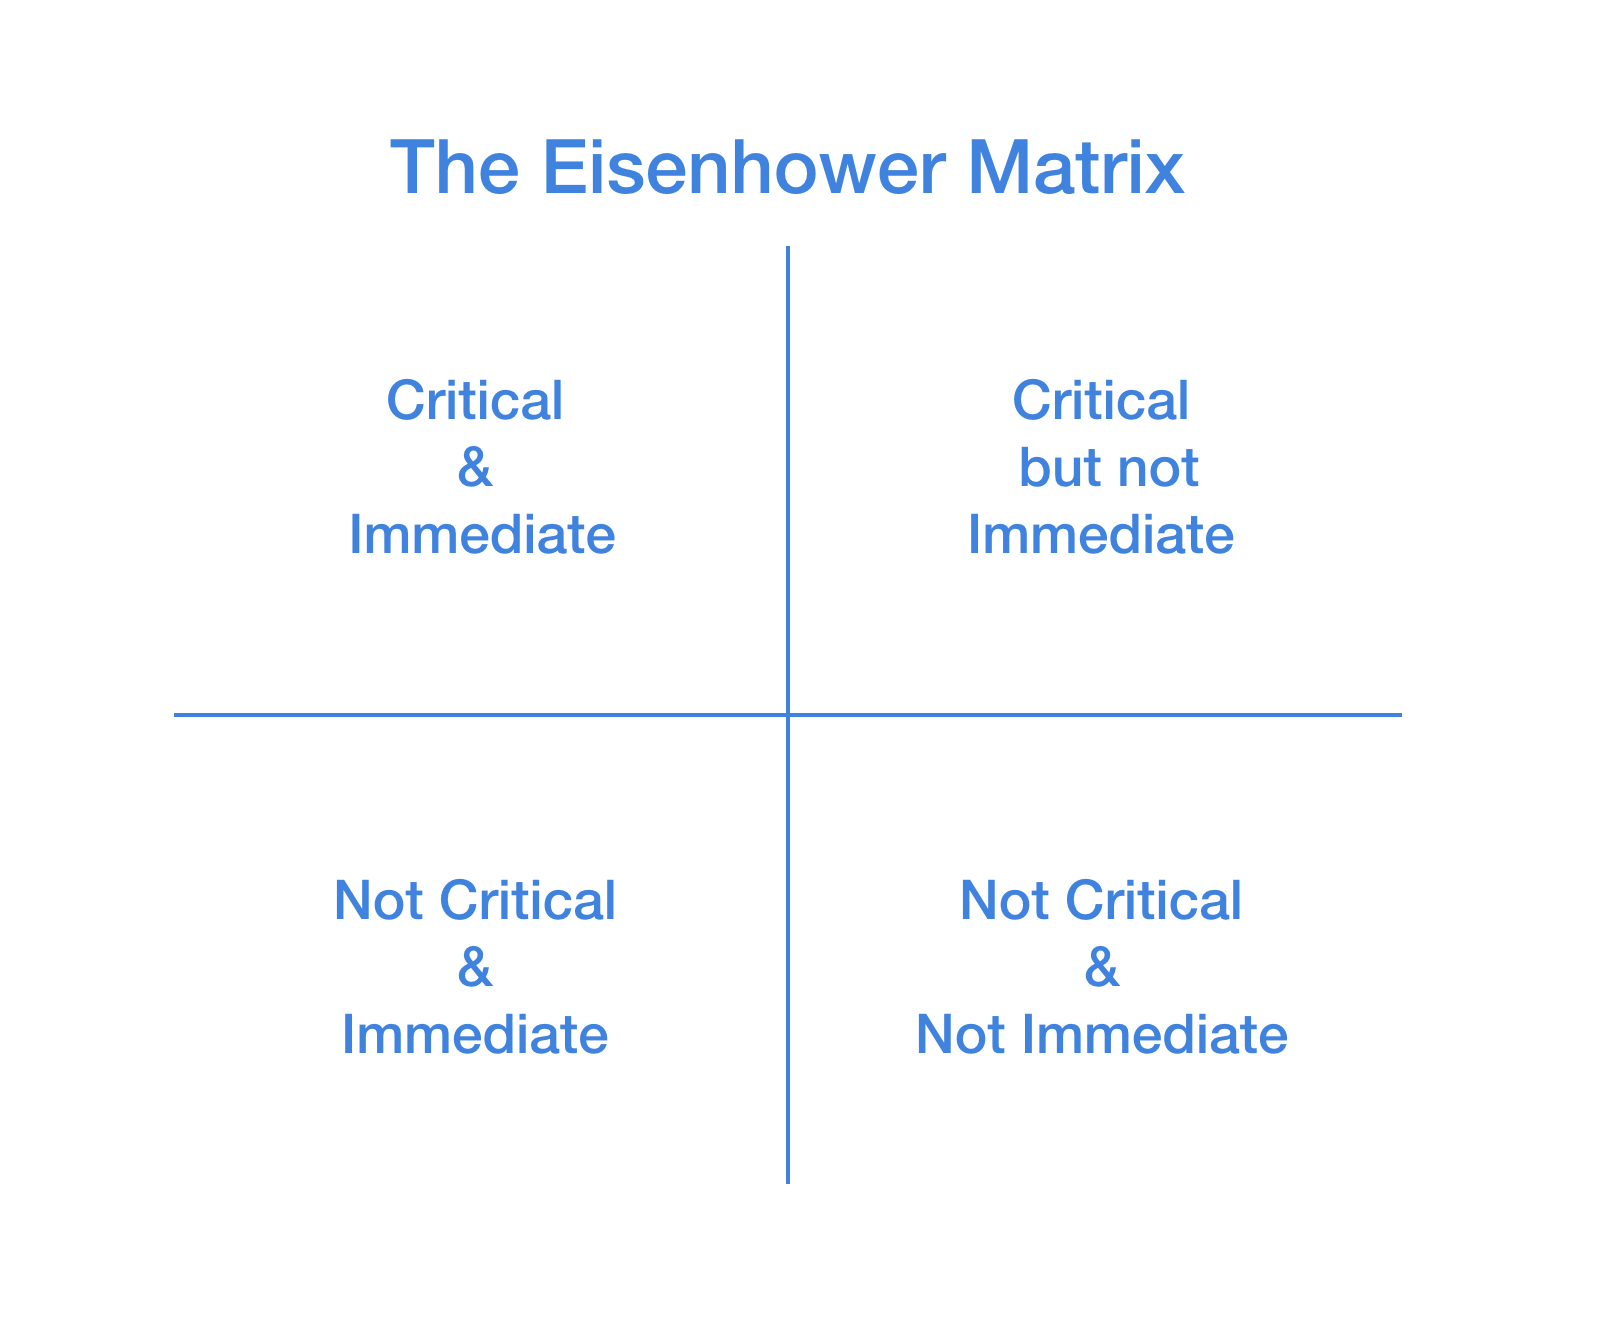 Eisenhower's Productivity Formula by appfluence.com/productivity